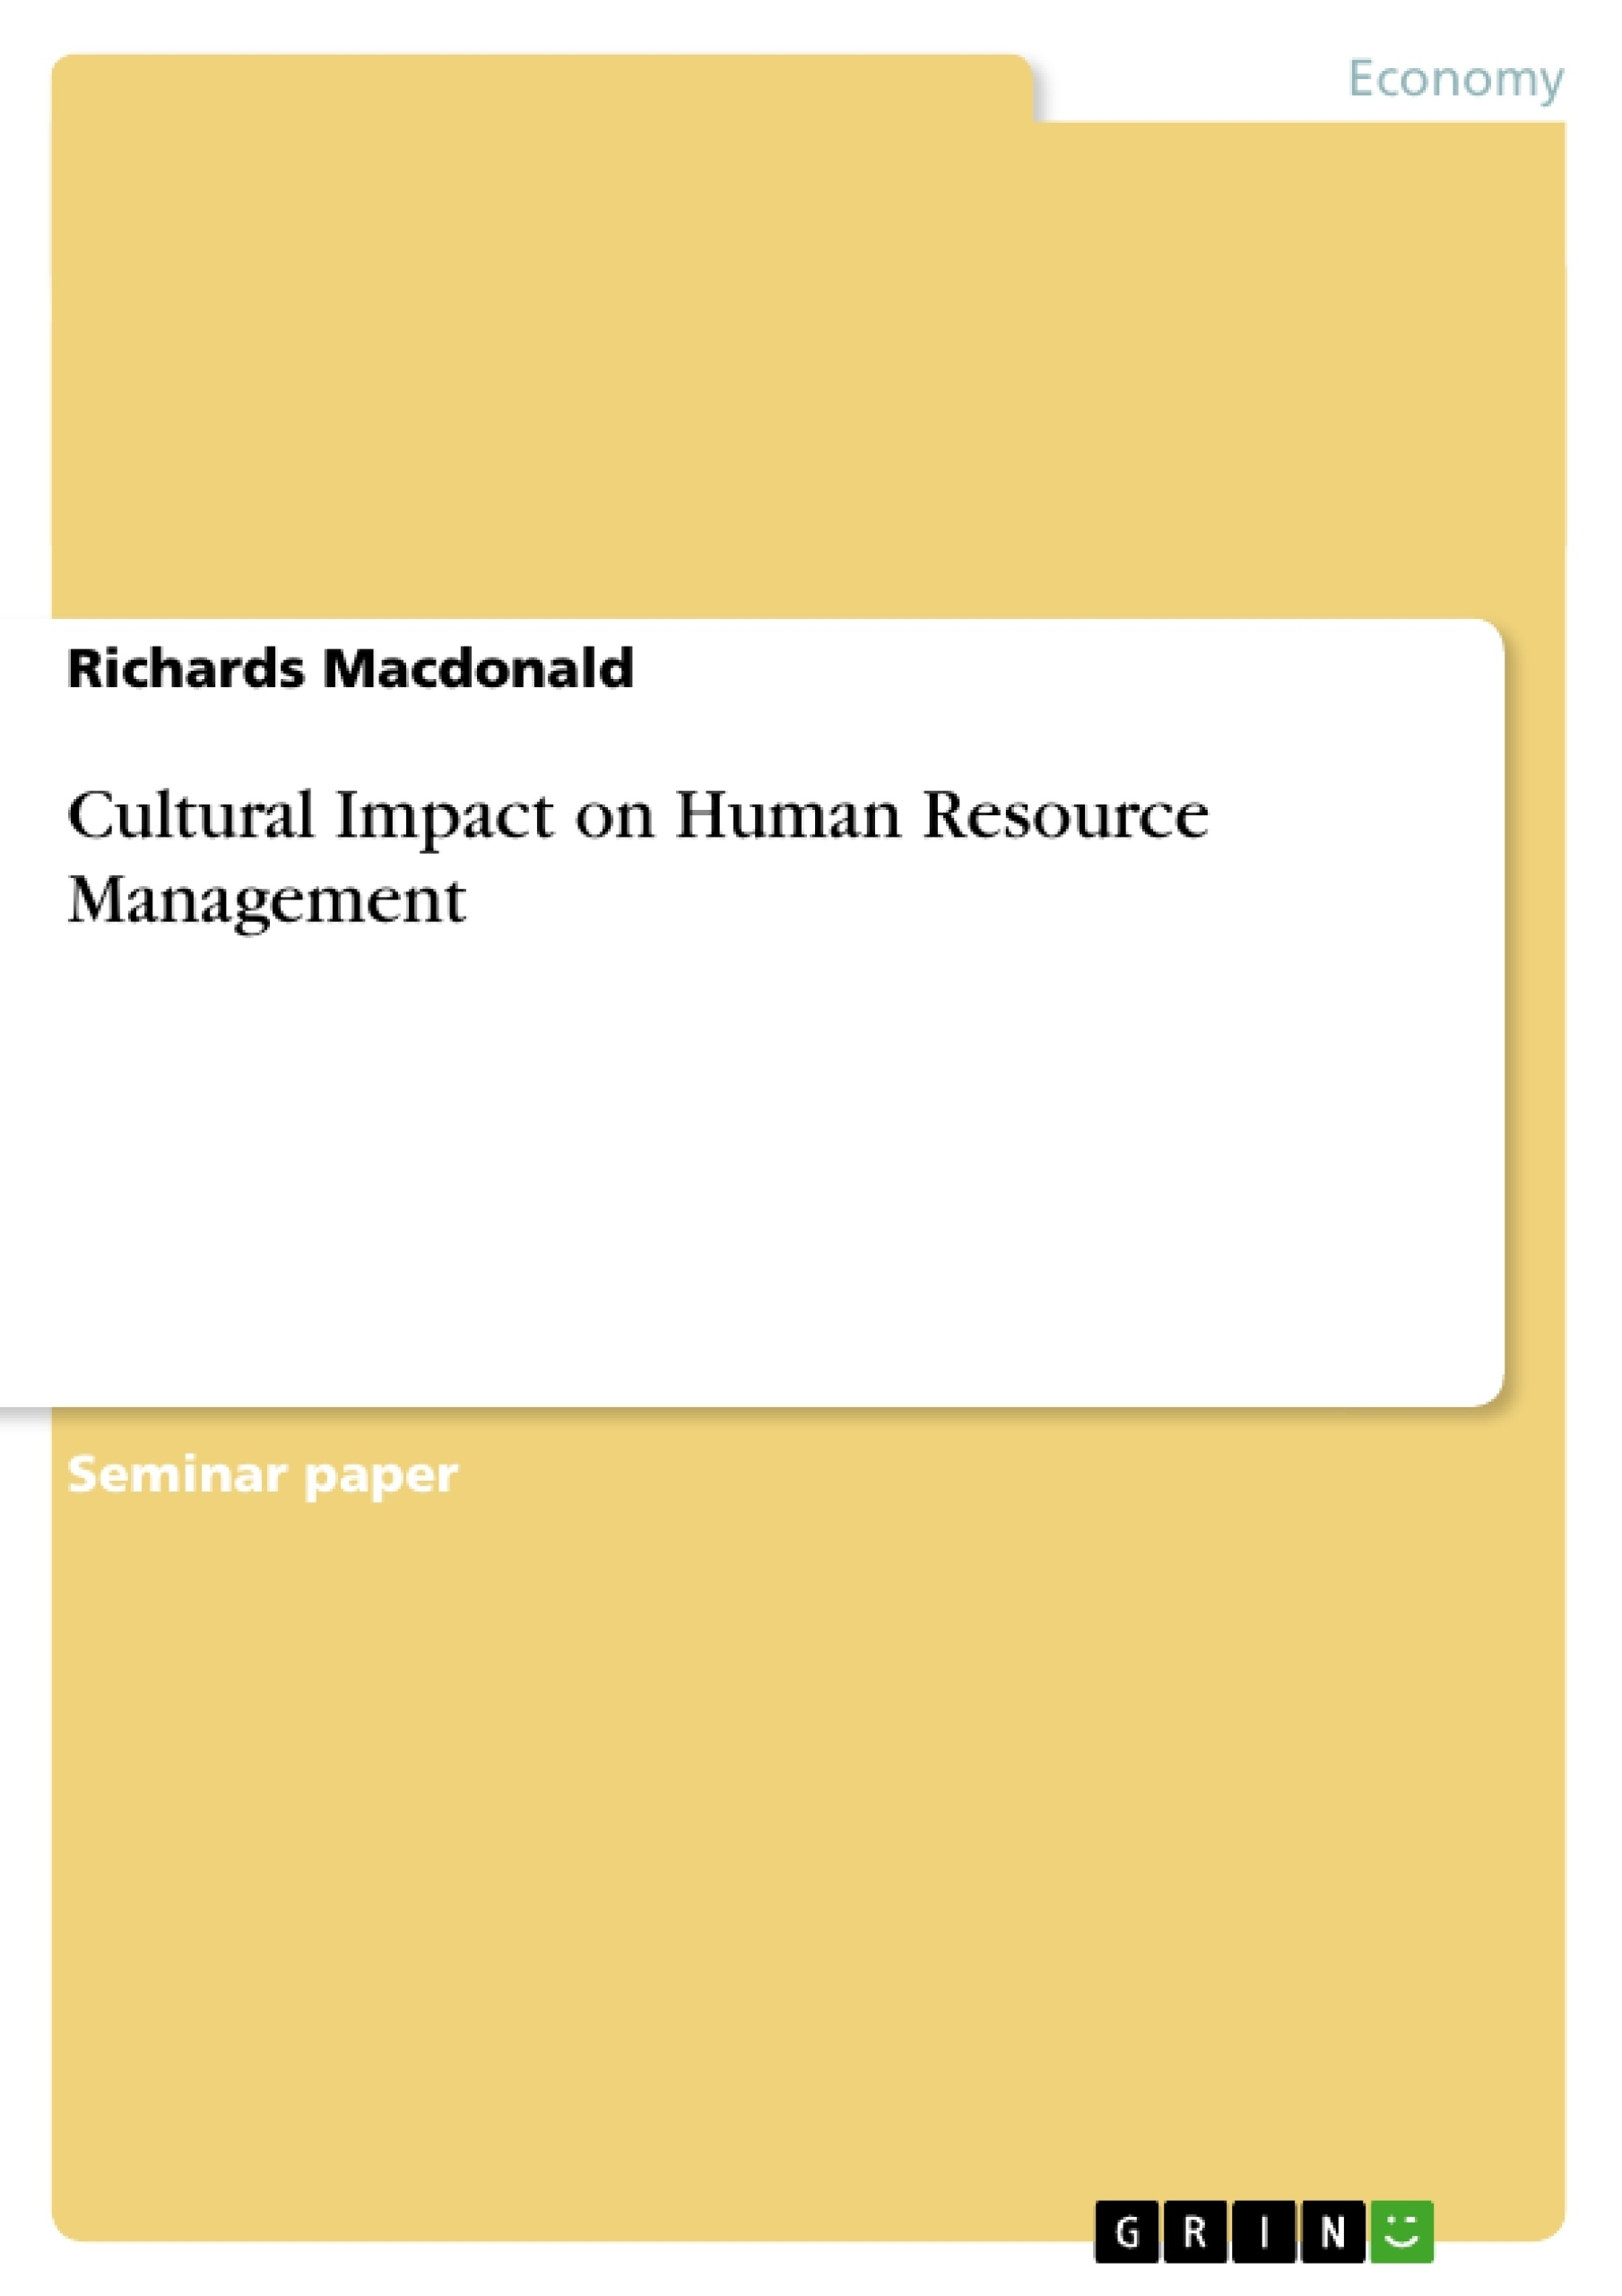 cultural resource management essay To conclude this we can say that cultural environment is an essential variable that reduces differences between domestic and international human resource management research has shown that there are differences in values, beliefs, attitudes and cultural environments with the increase in internalization of employment.